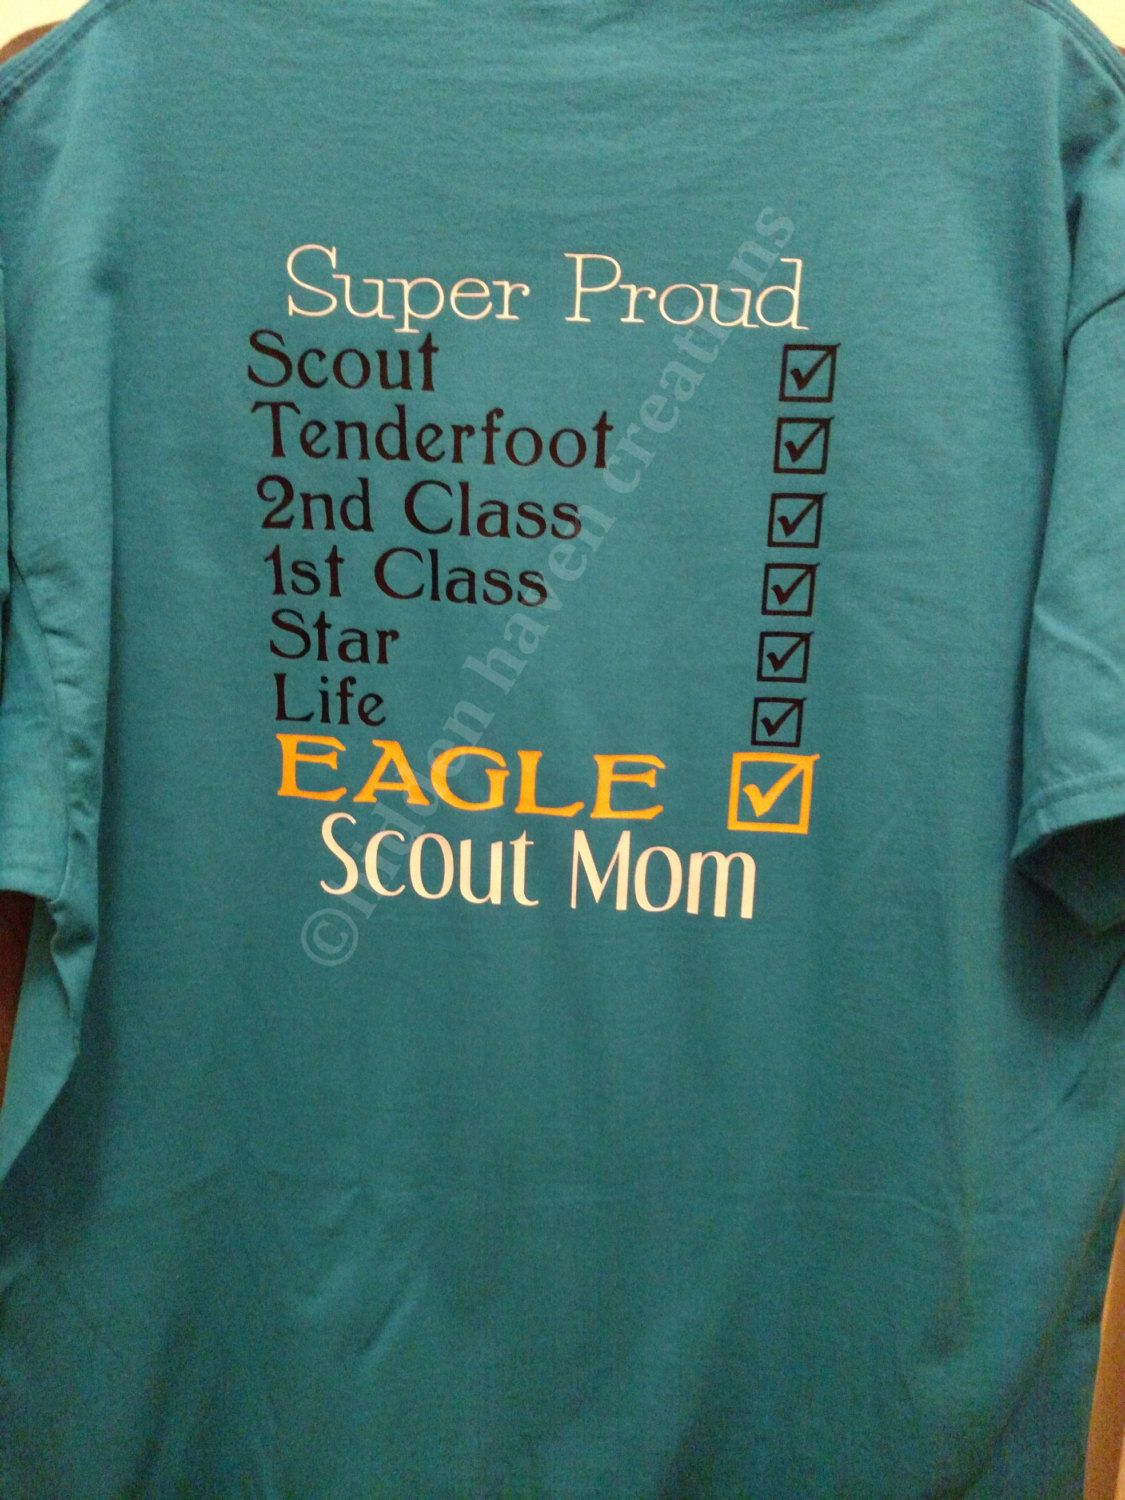 cb4a2725 Eagle Boy Scout Mom T-Shirt XL Tenderfoot, Second Class, First Class, Star,  Life, Eagle by HiddenHavenCreations on Etsy